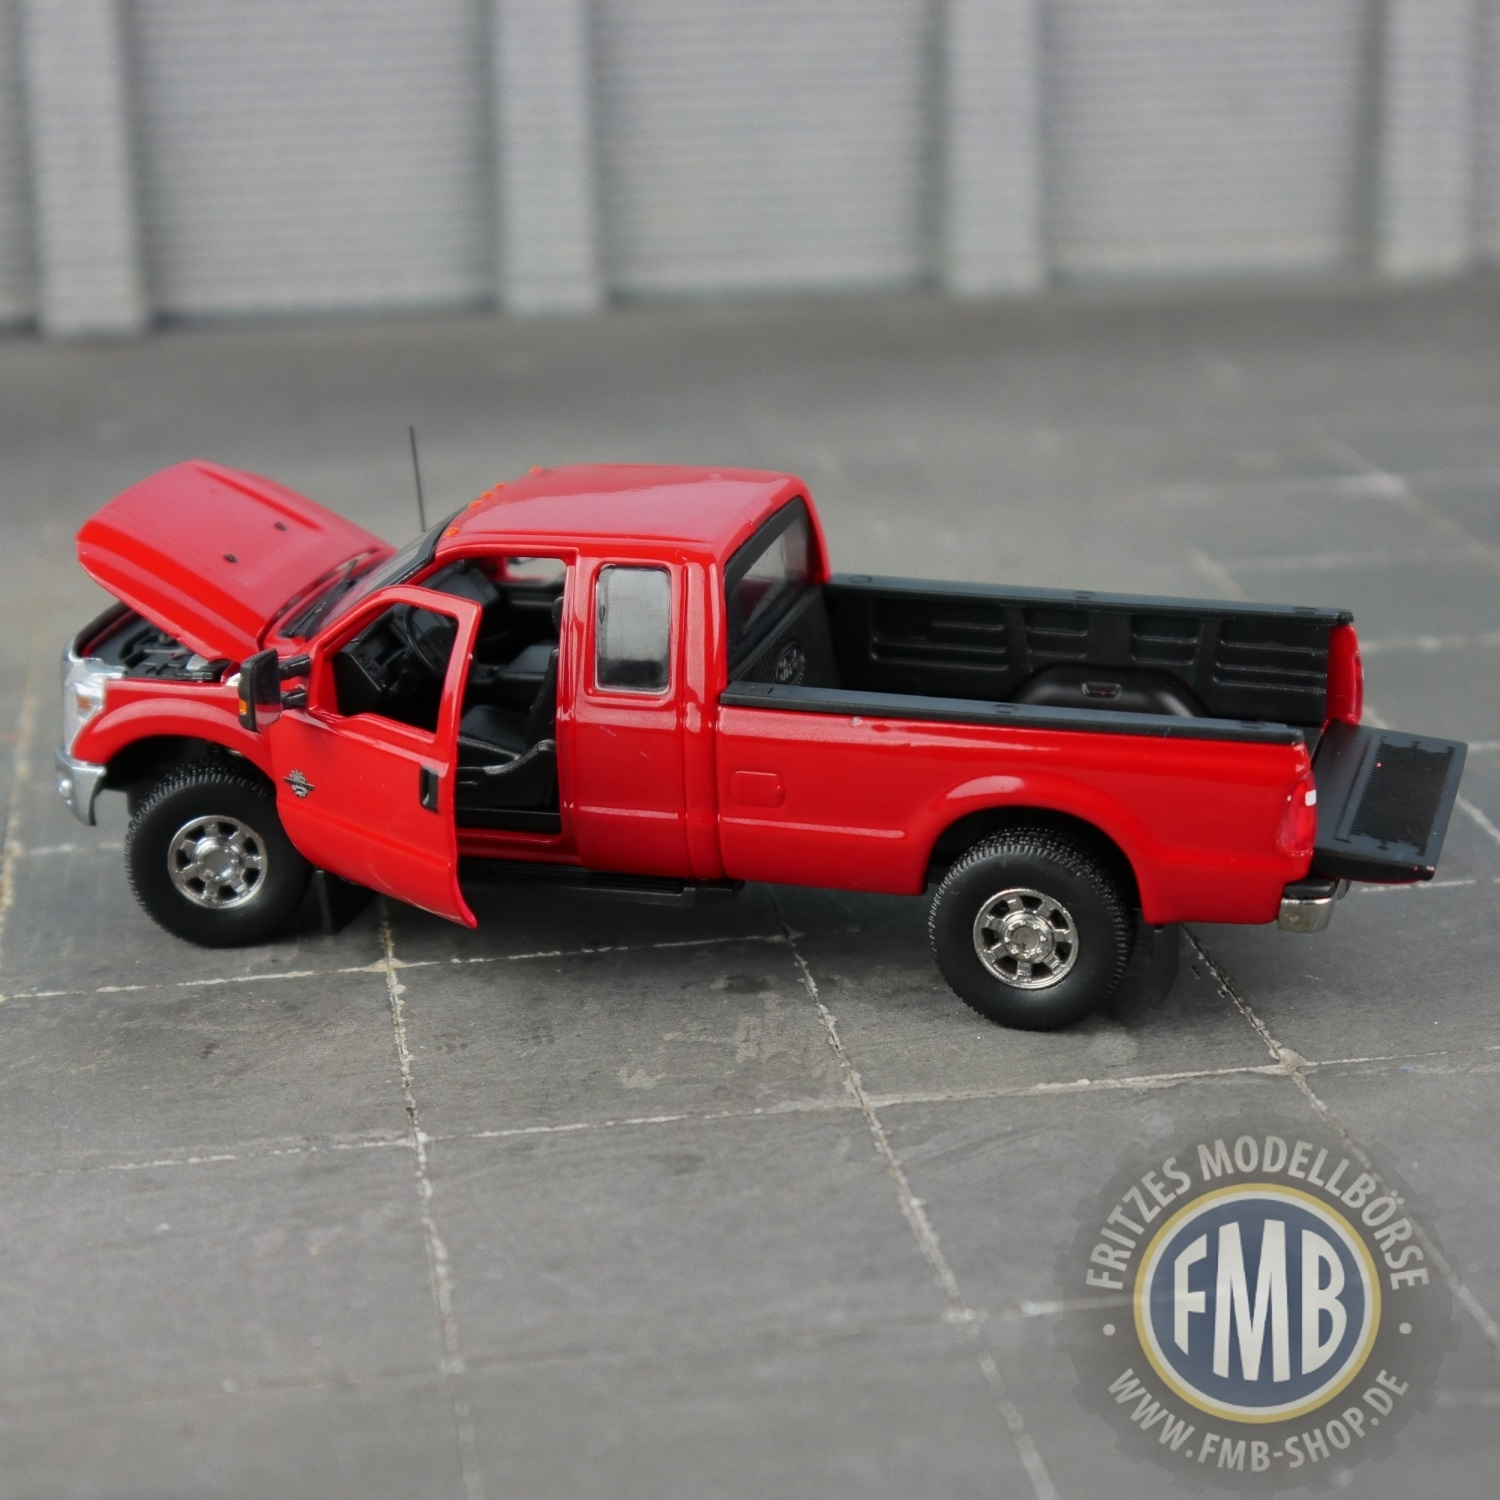 Ford F250 XLT Super cab 8 Bed rot SWORD sw 1100-r 1:50